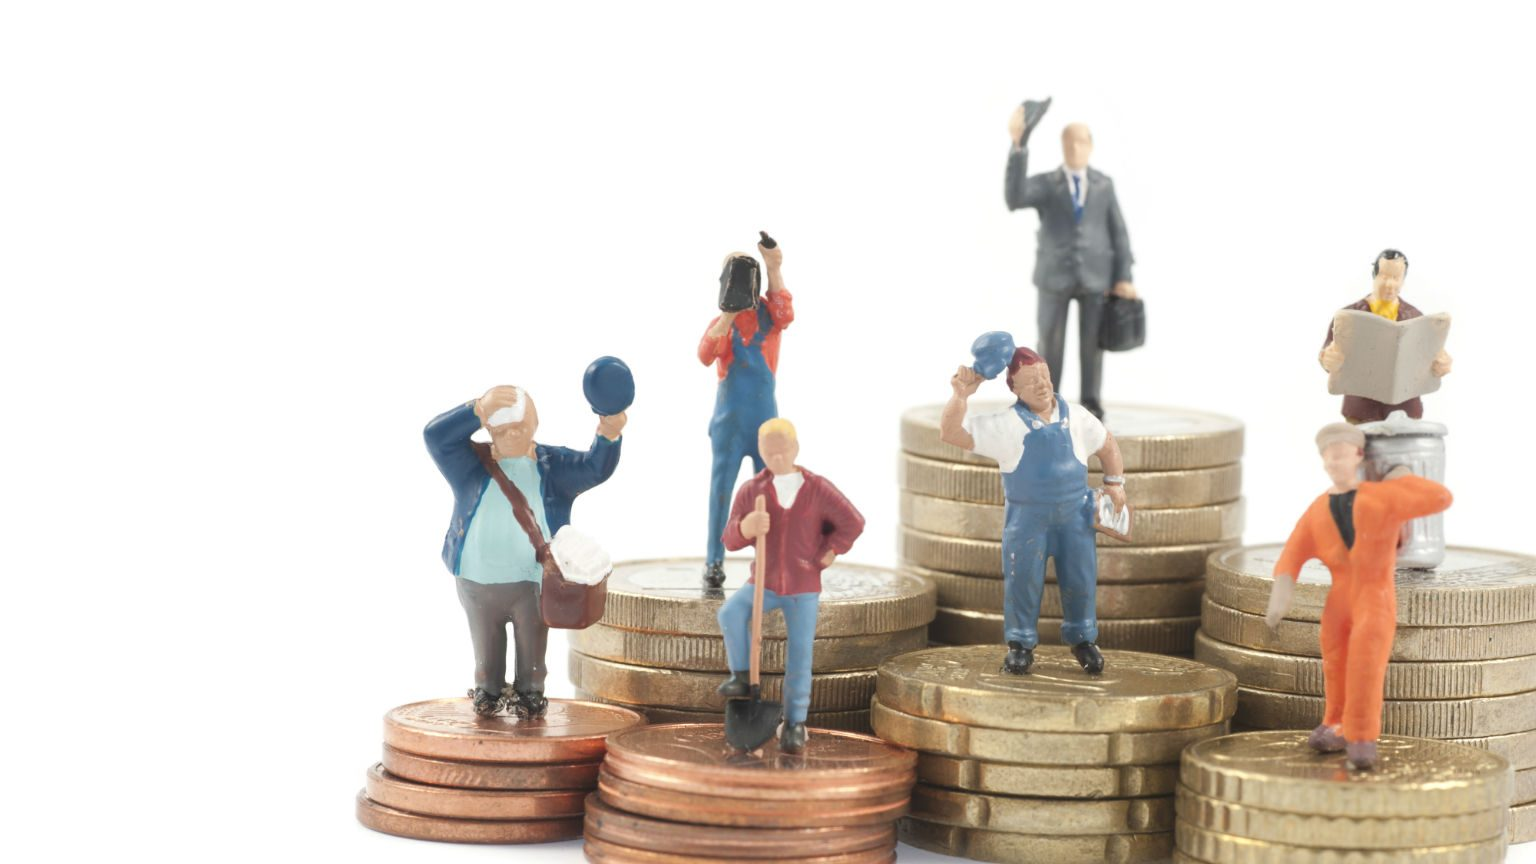 Worker figurines standing on coins.